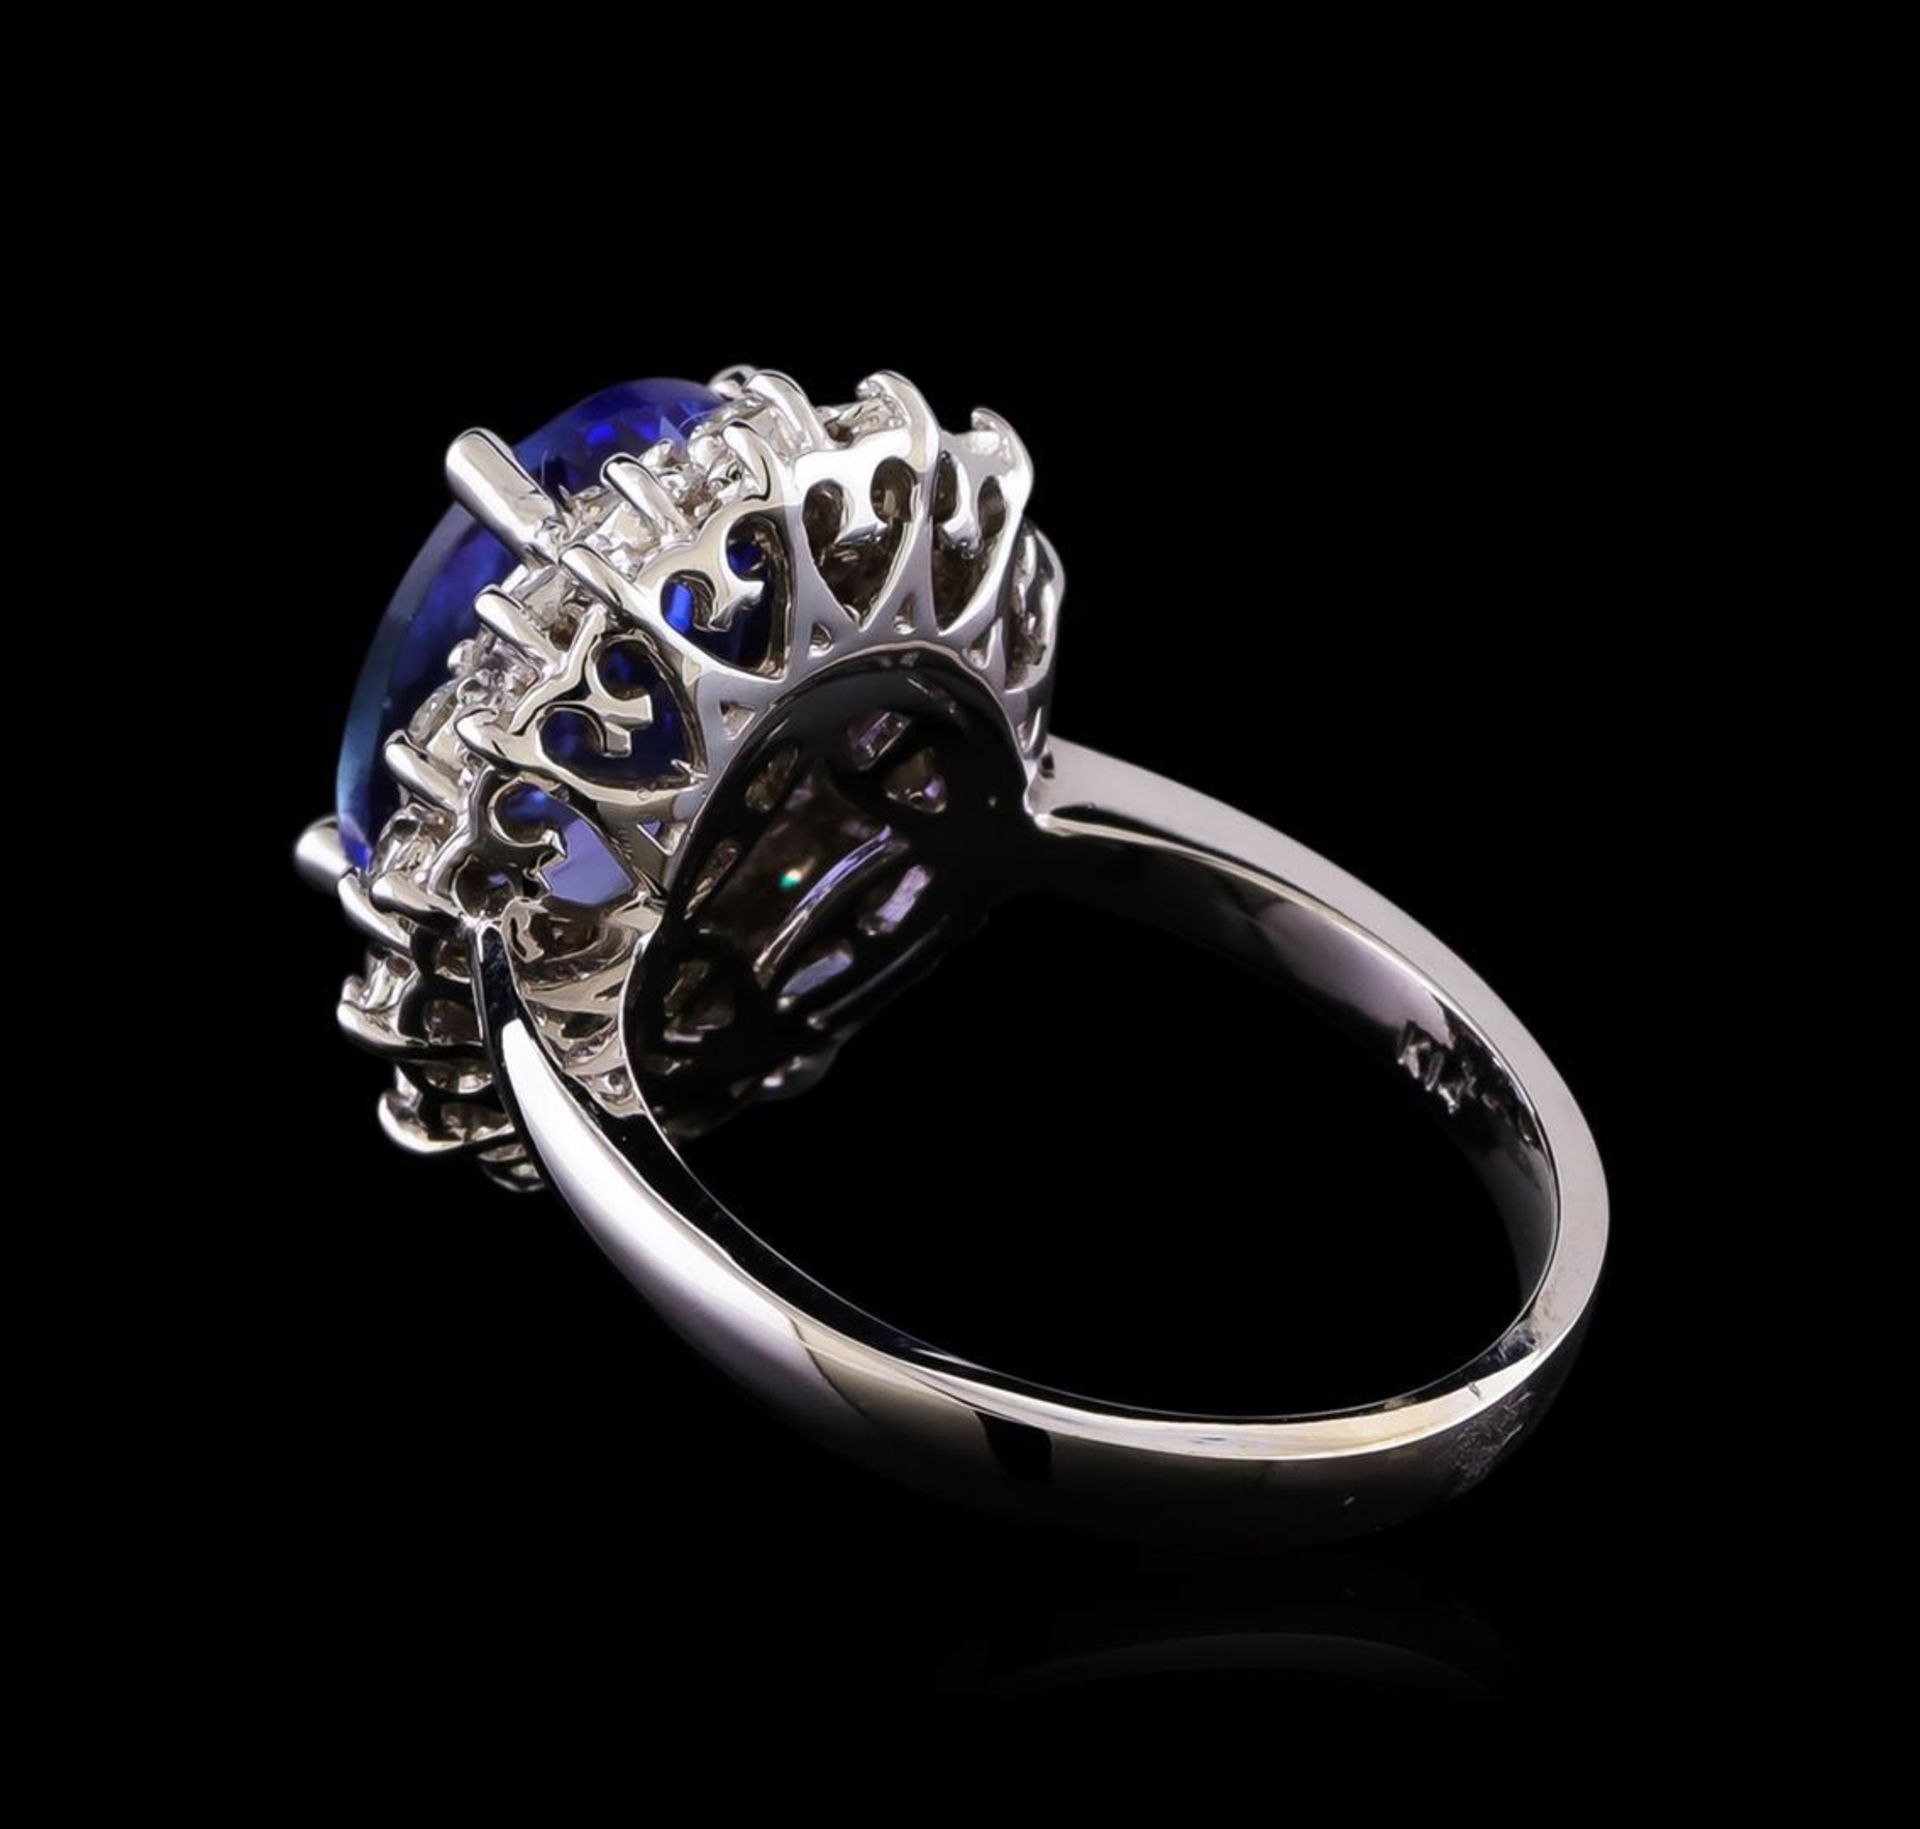 5.53 ctw Tanzanite and Diamond Ring - 14KT White Gold - Image 3 of 5